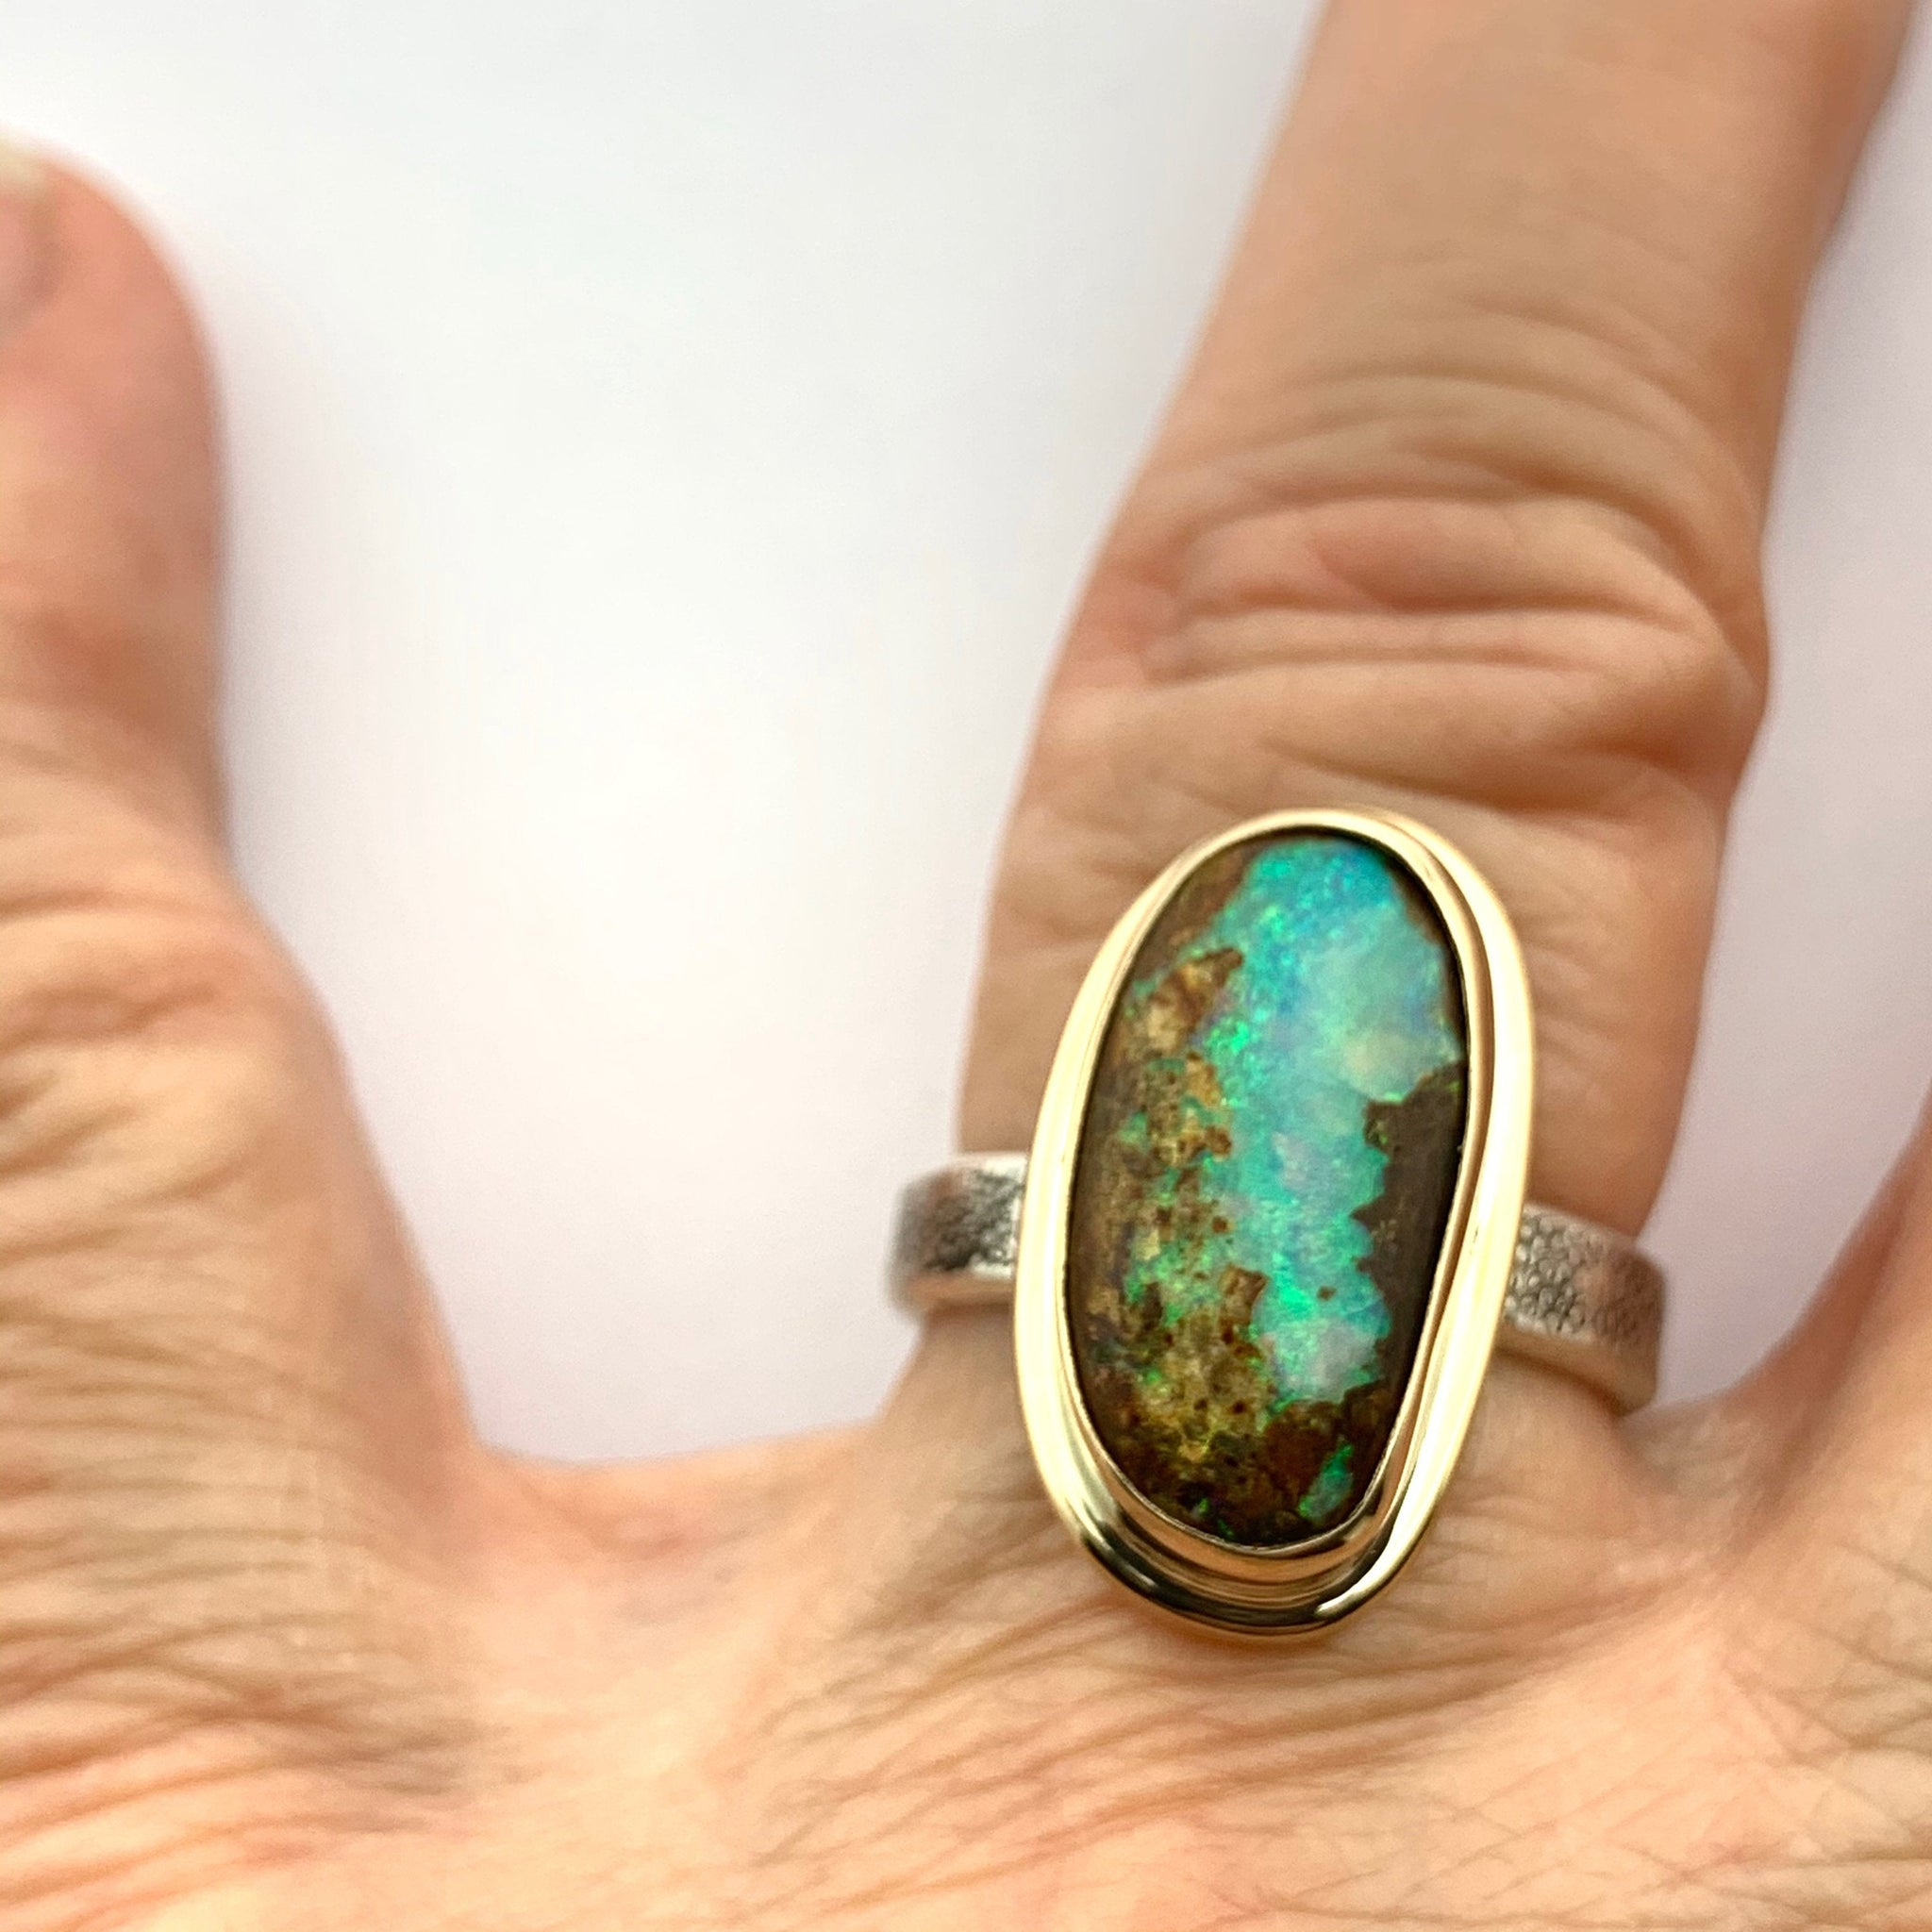 Australian Opal Ring in Gold and Silver, Freeform Opal Ring with Textured band